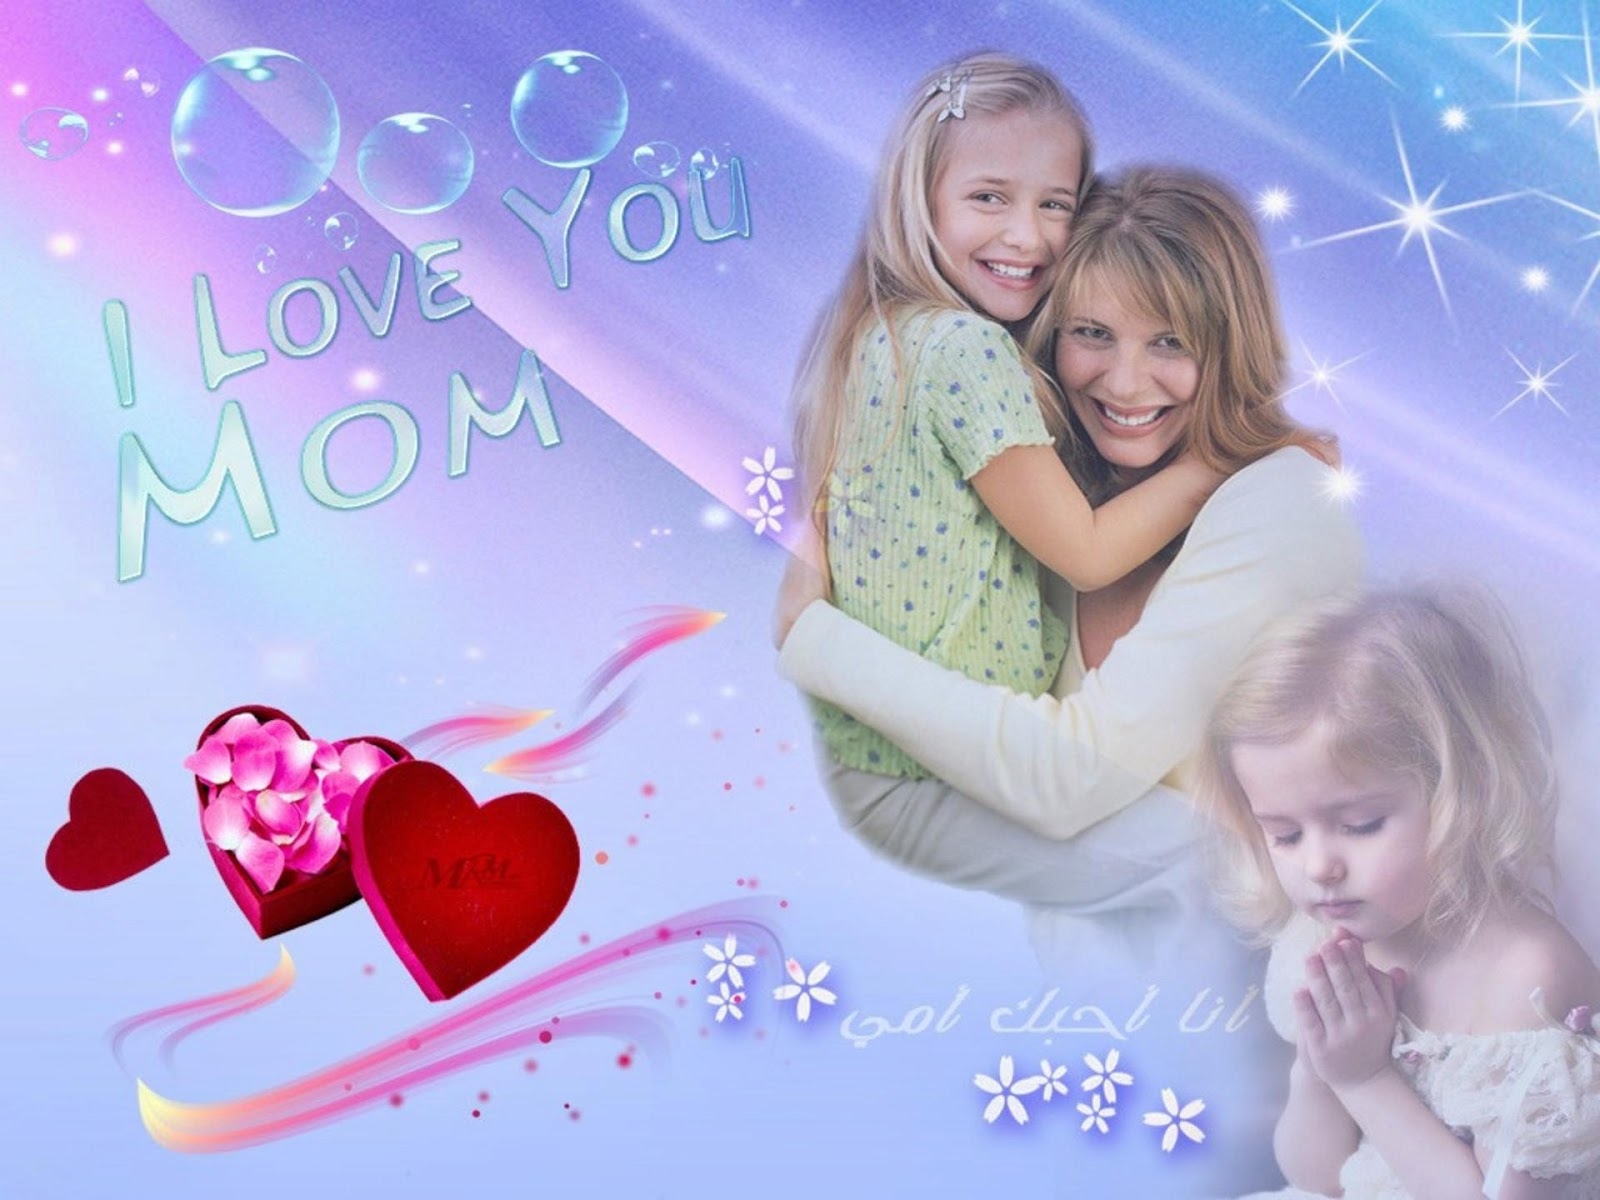 Wallpaper Free Download: Mother s Day Picture